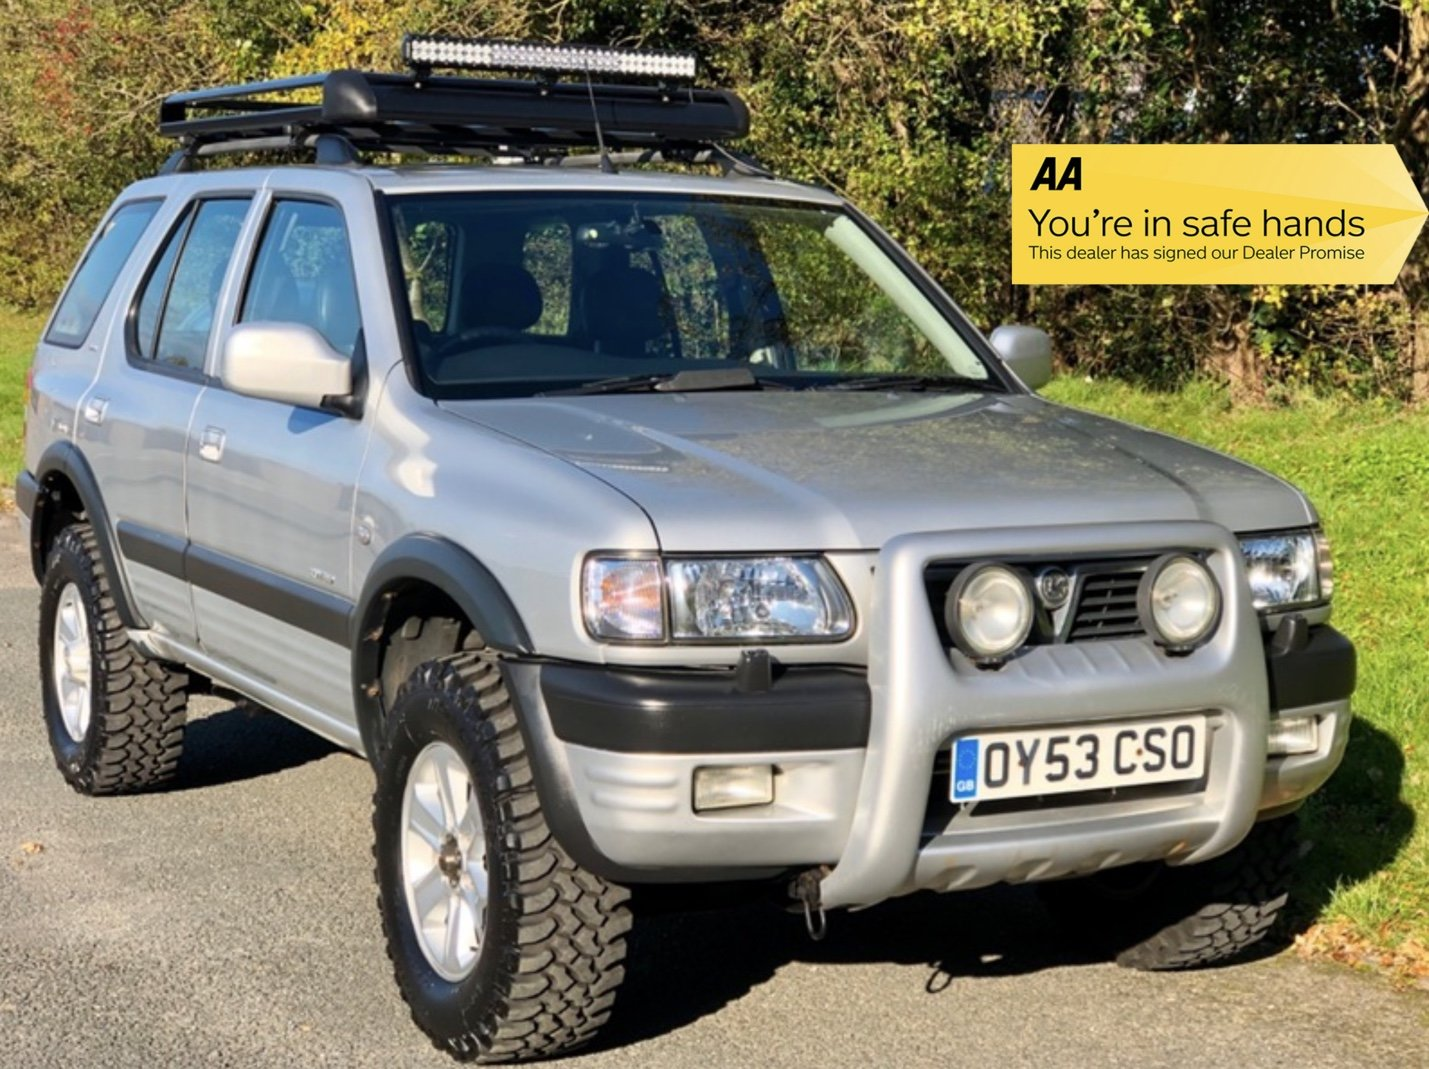 2003 Vauxhall Frontera Limited 3.2 V6 Manual - 49,000 miles! For Sale (picture 1 of 6)